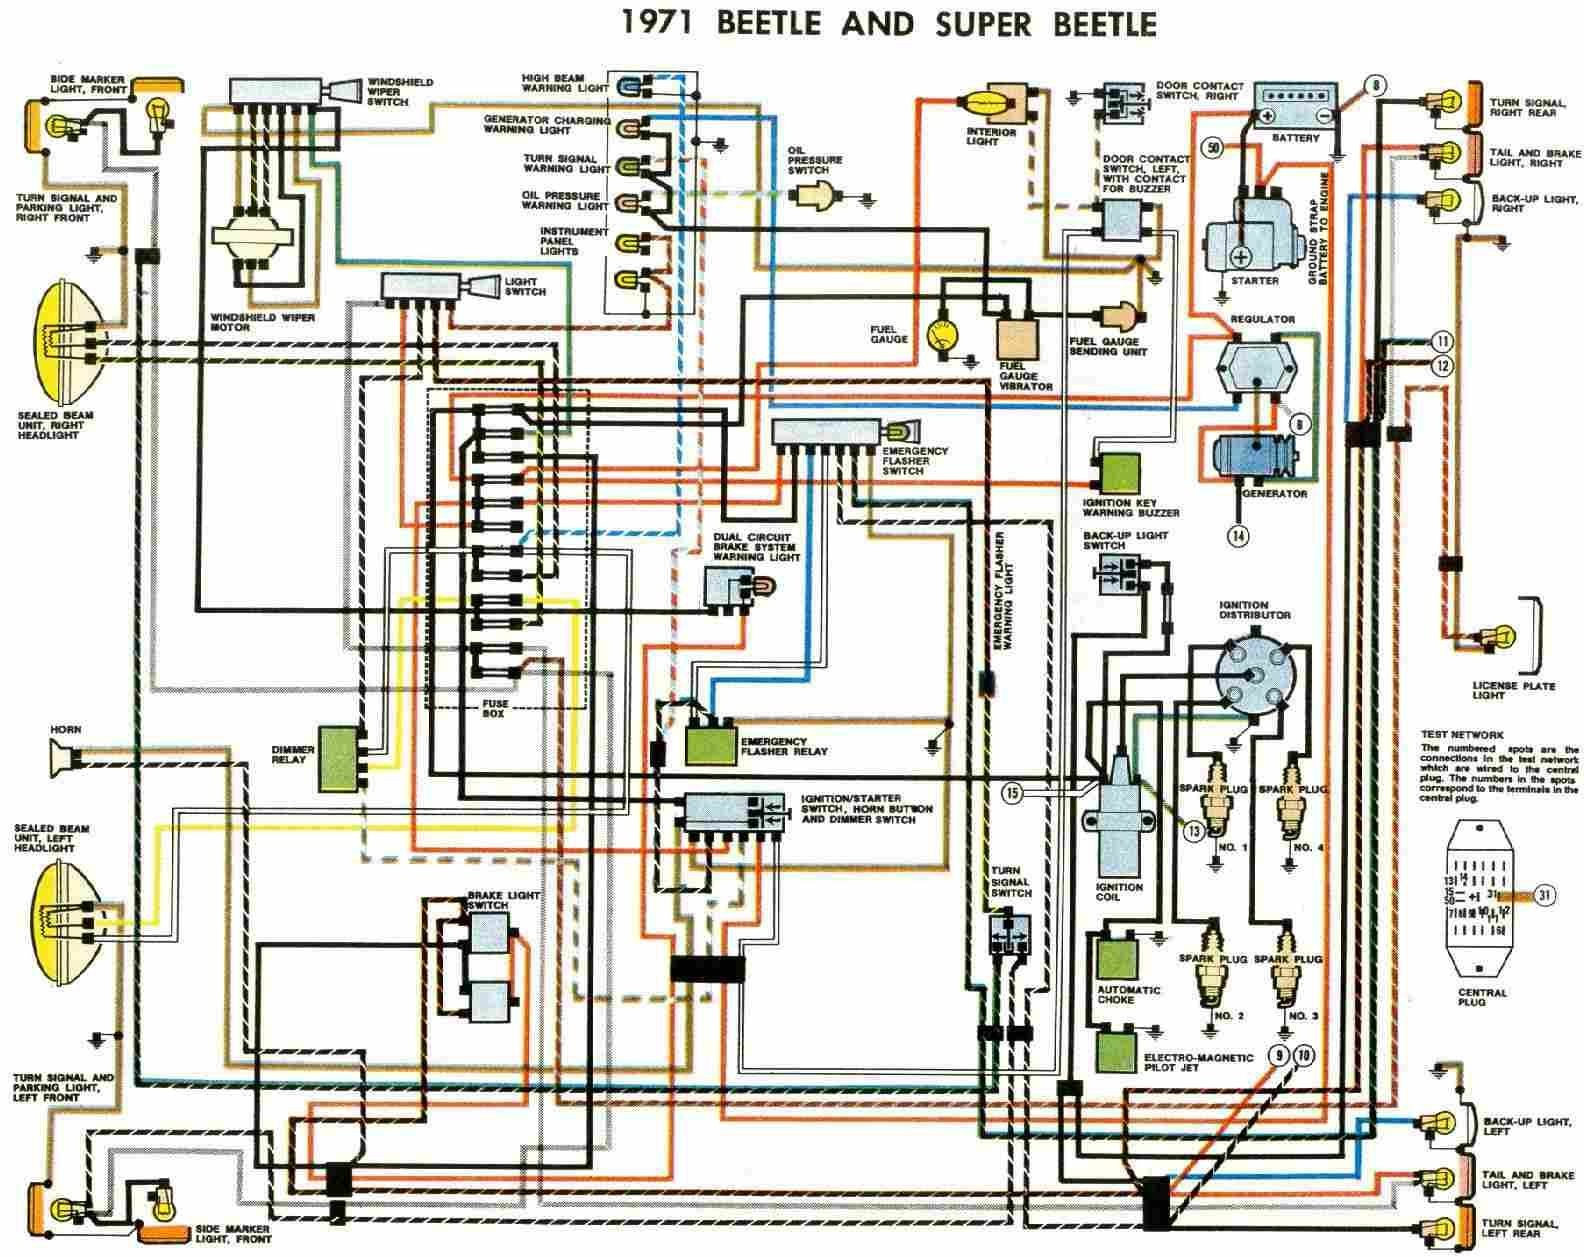 hight resolution of 2001 volkswagen beetle wiring diagram data wiring diagram 2001 vw beetle alternator wiring harness 2001 vw beetle wiring